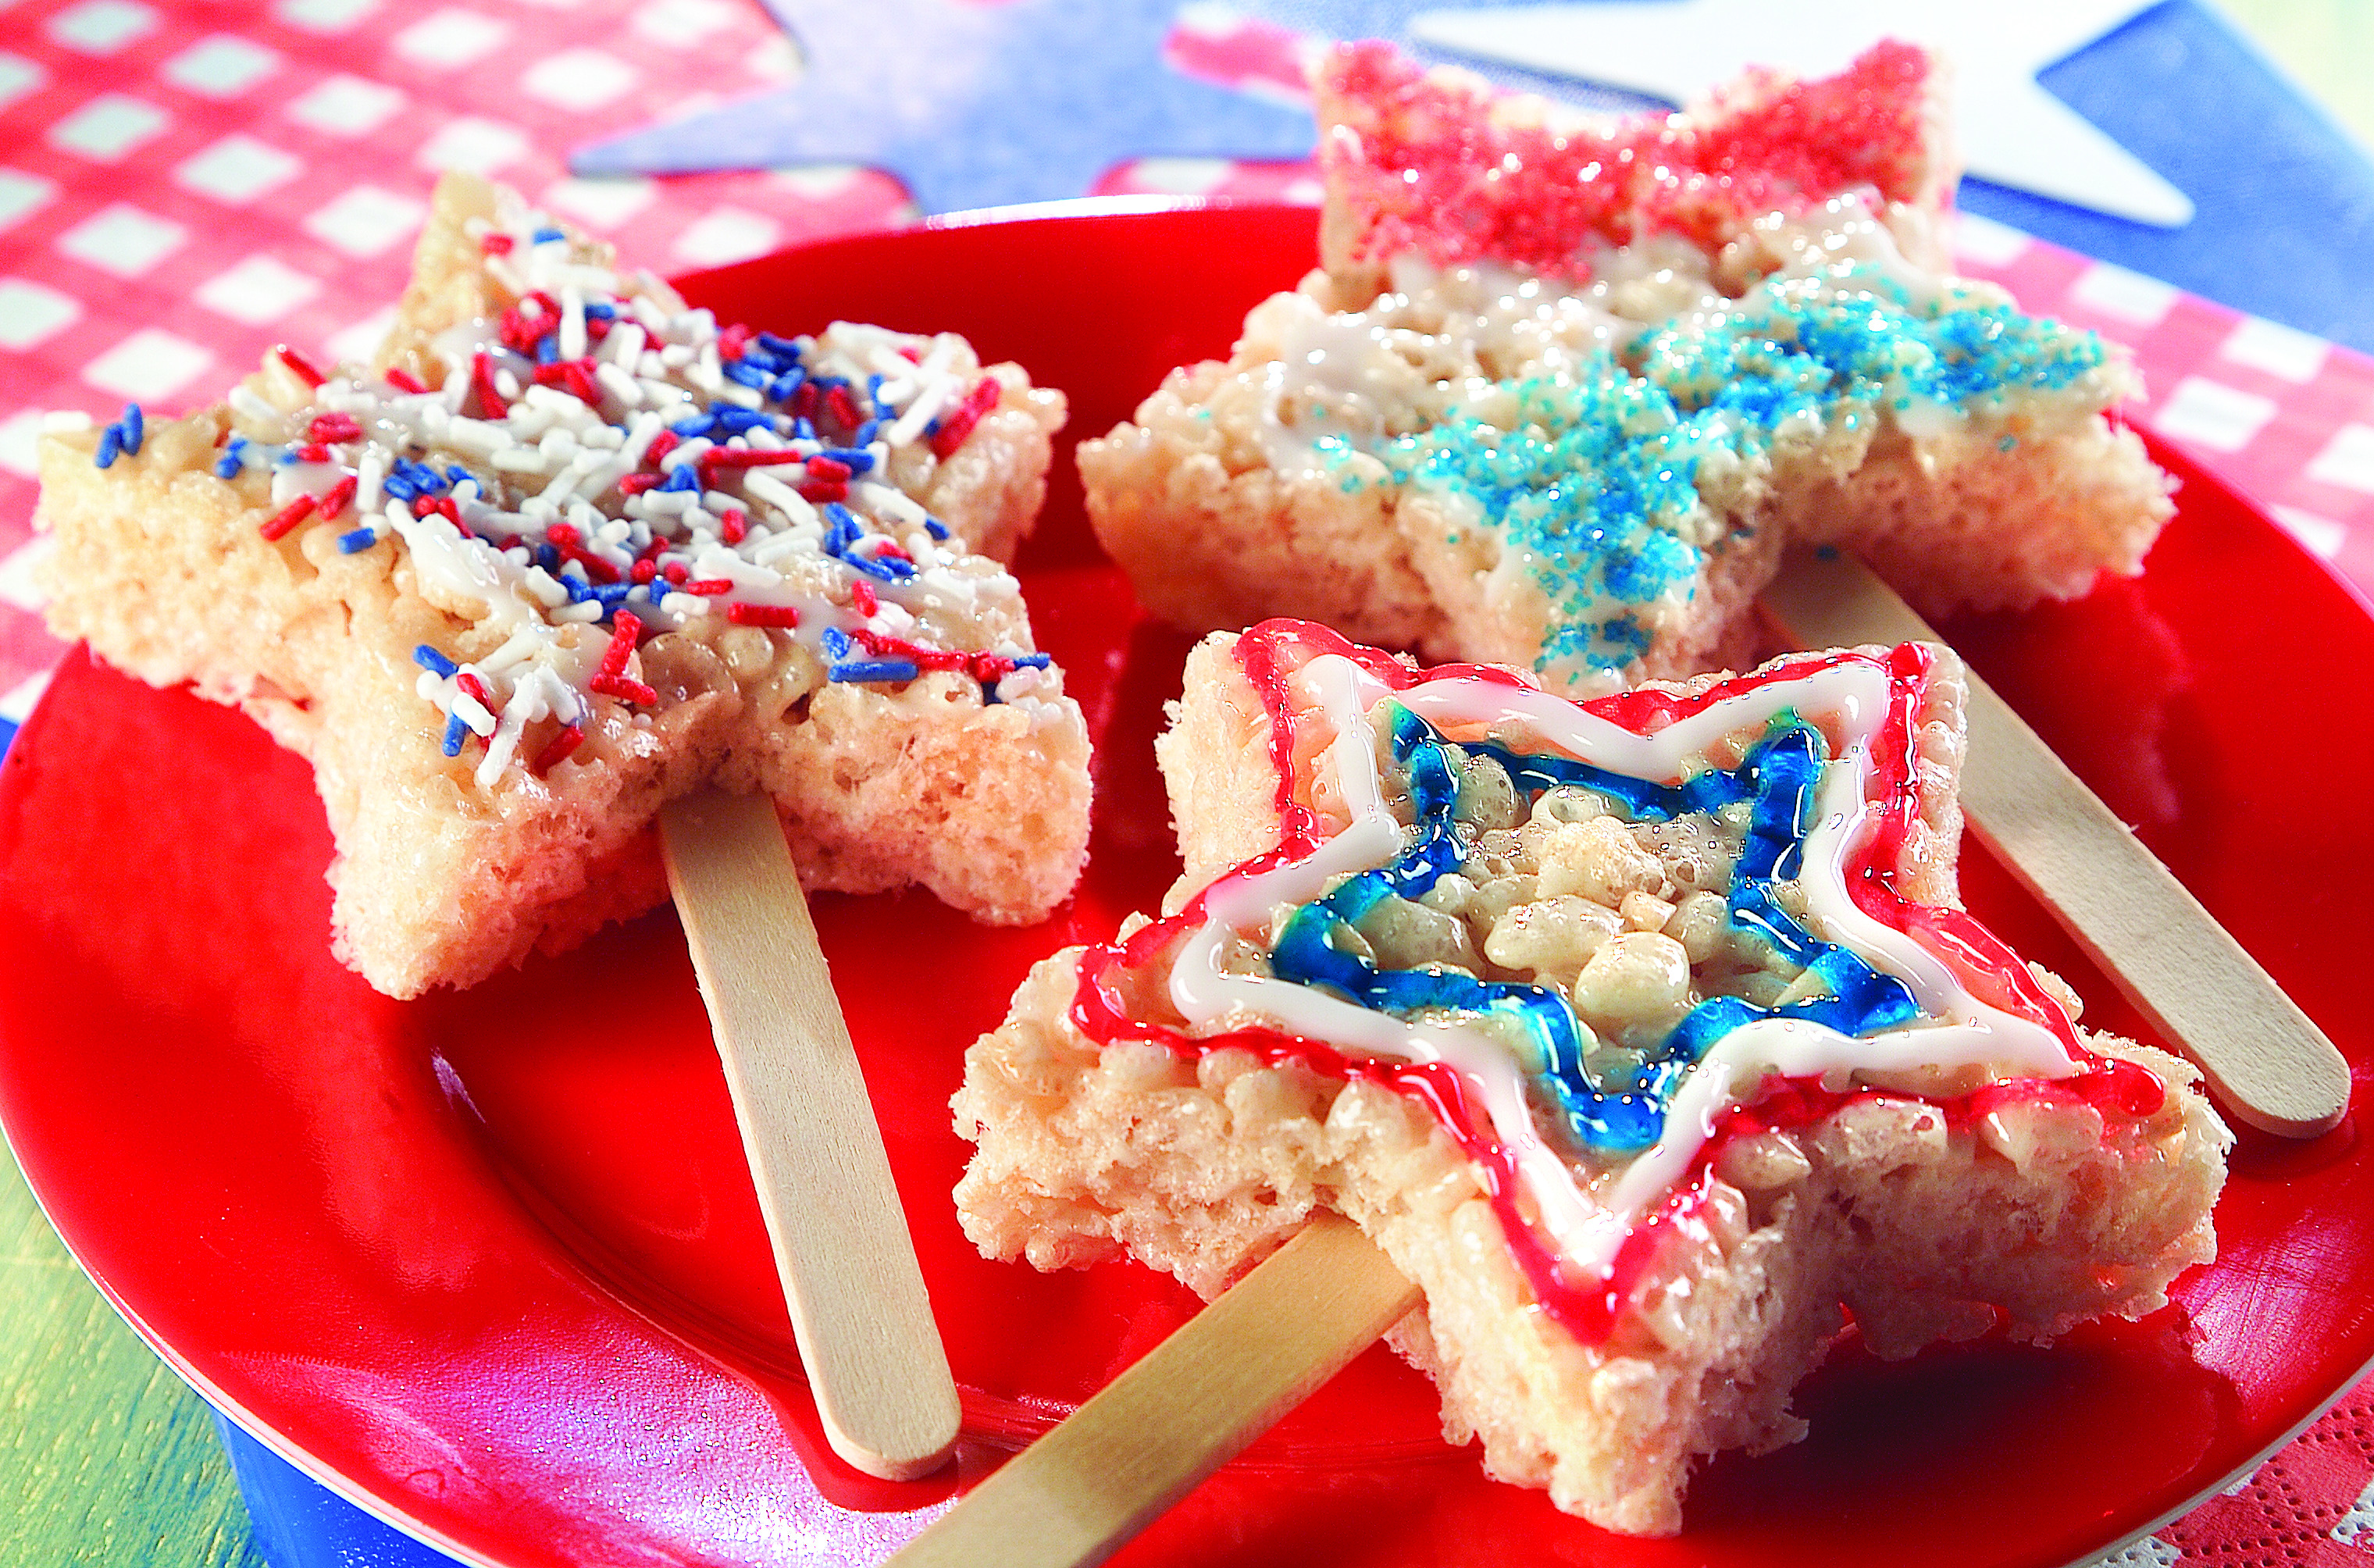 Marshmallow Star-Shaped Cereal Treats